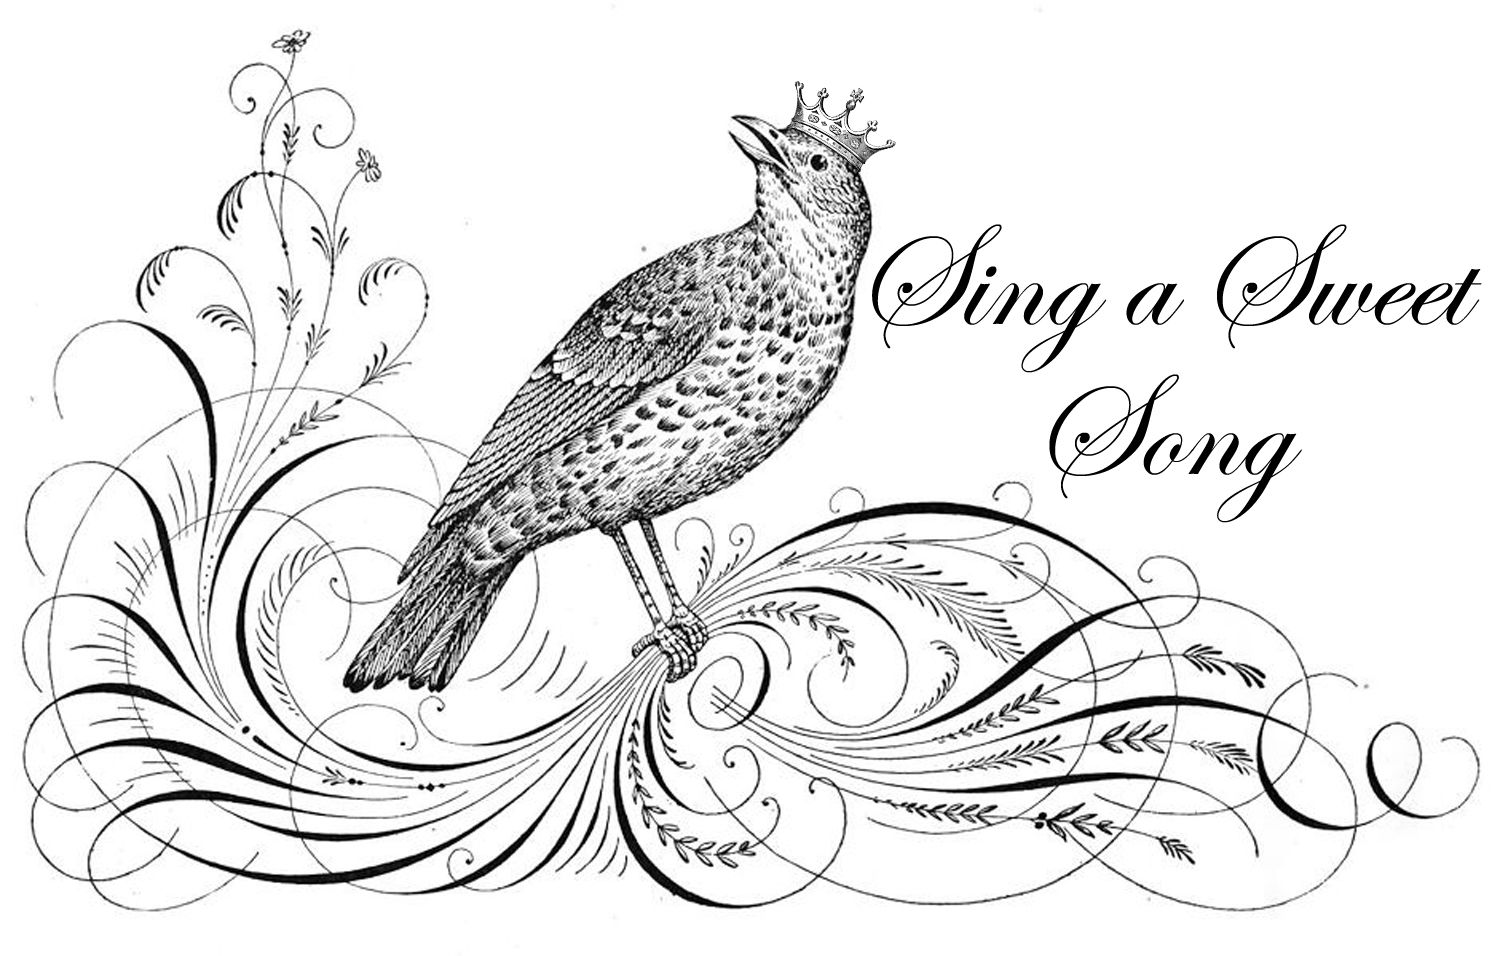 Free Graphic Of The Evening Crowned Song Bird